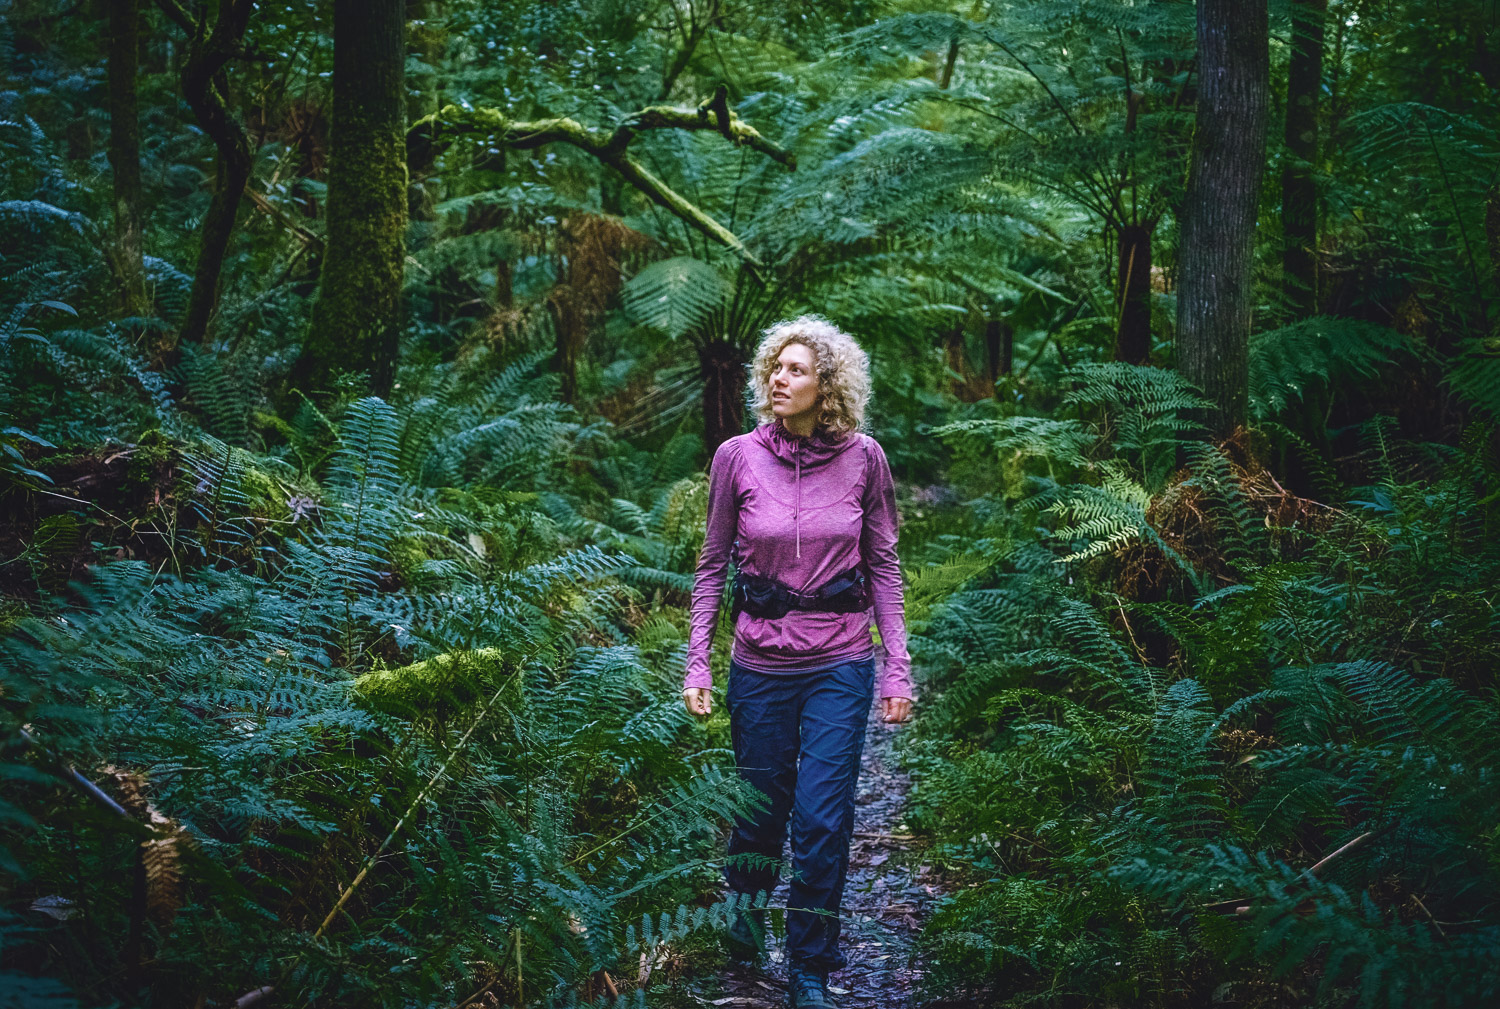 Dina hiking in forest on Mount Cowley, Lorne Australia